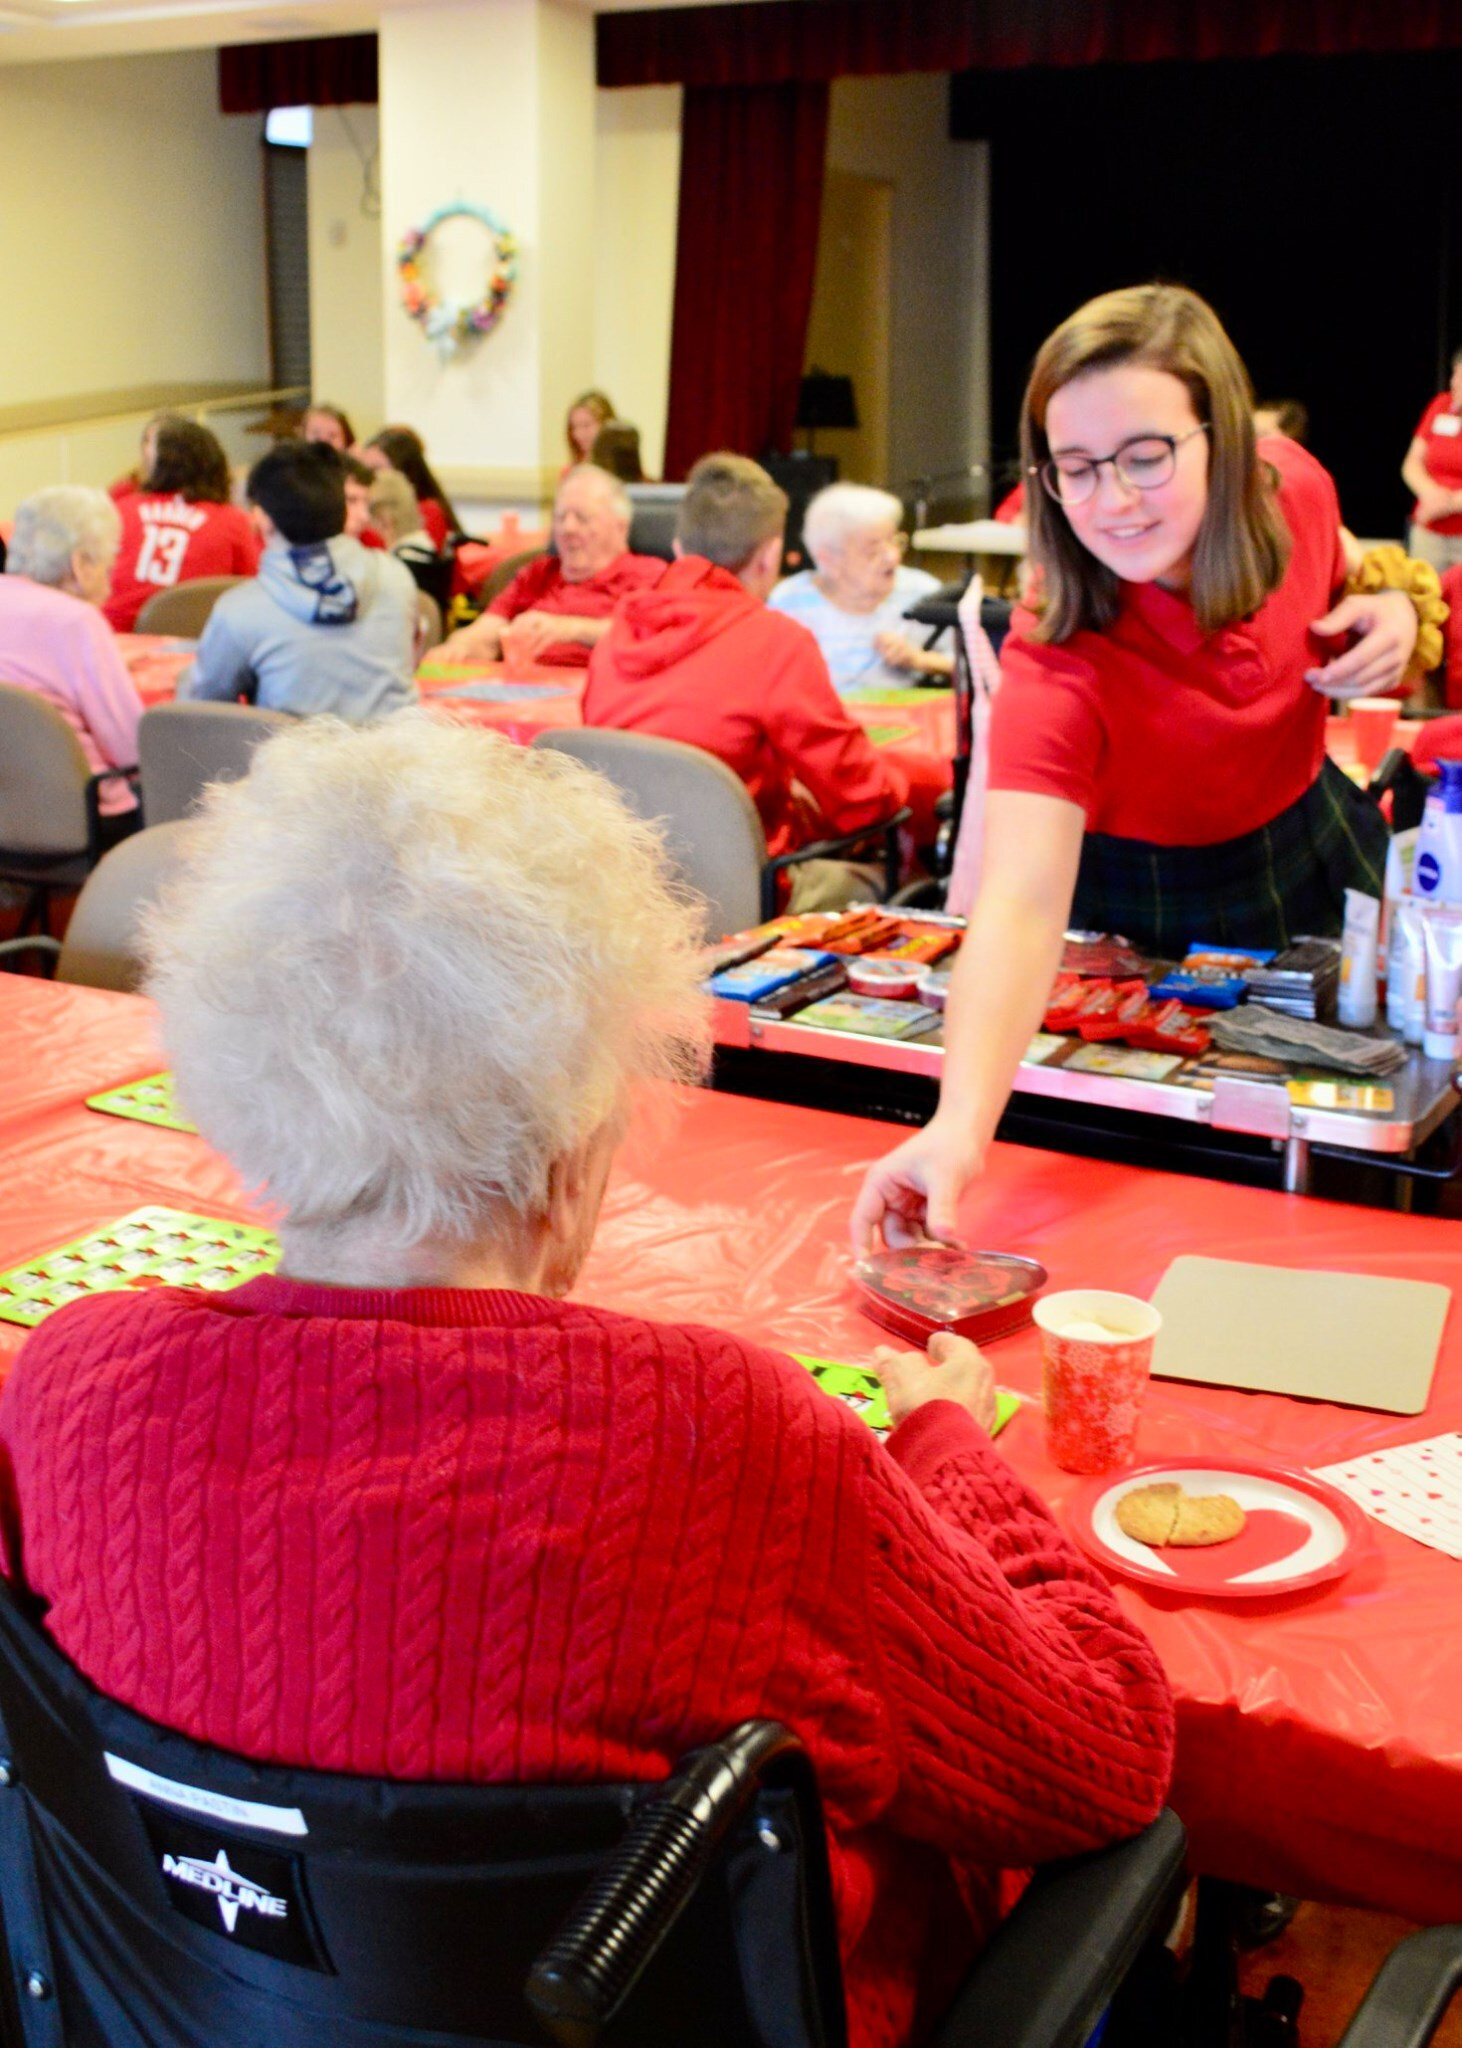 Valentine's Day at Little Sisters of the Poor